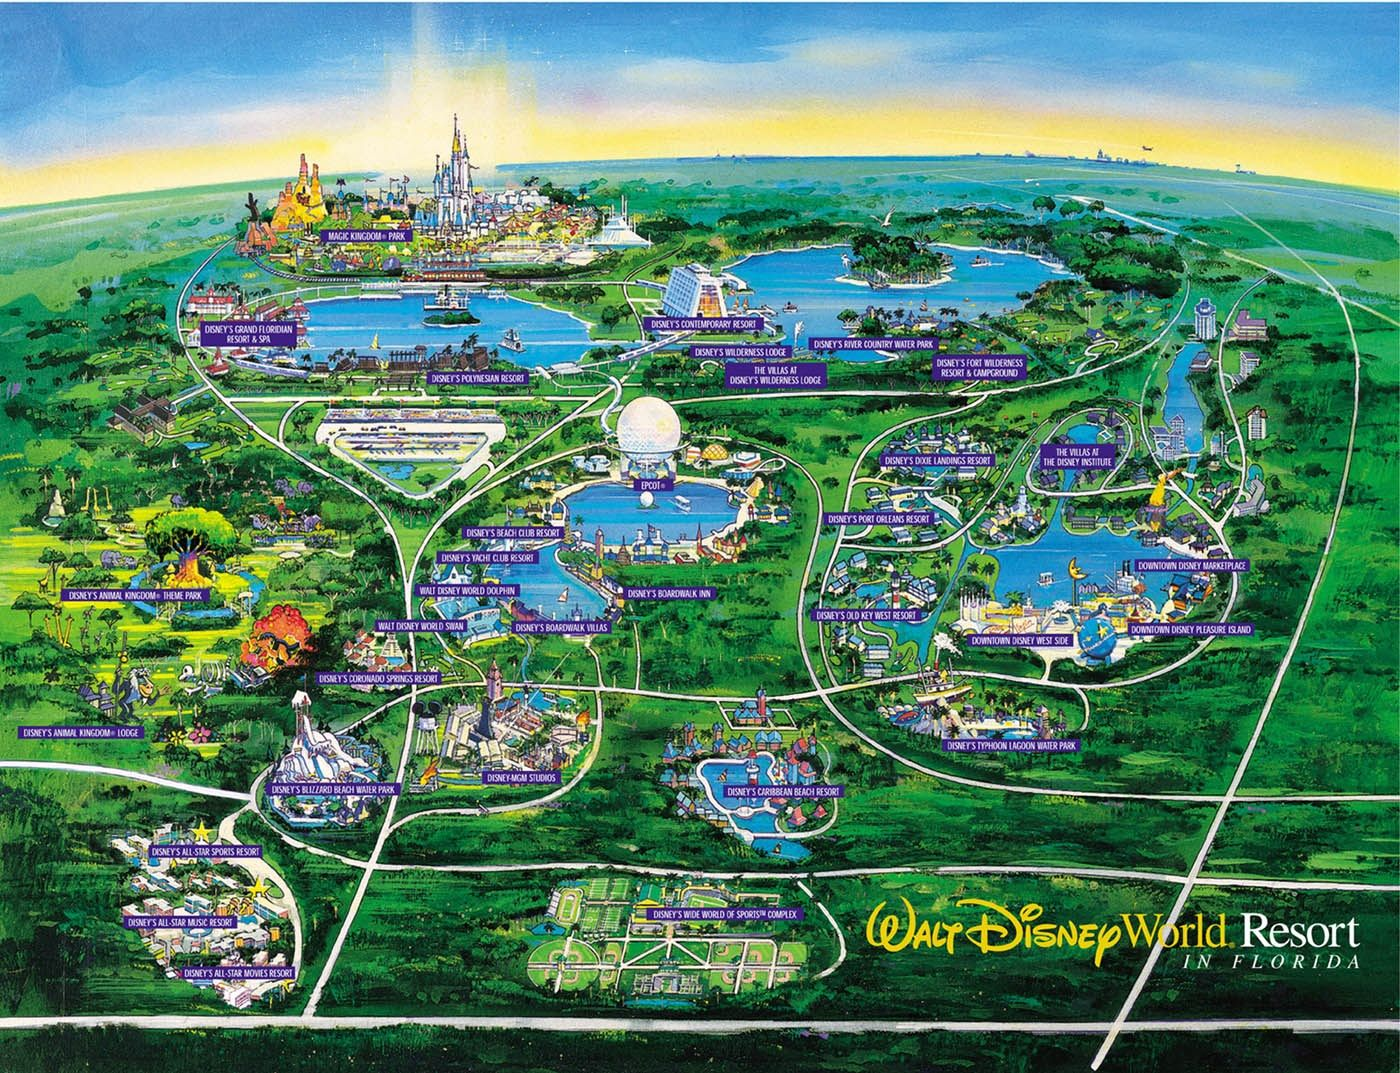 17 Best ideas about Disney World Map on Pinterest | Disney ...